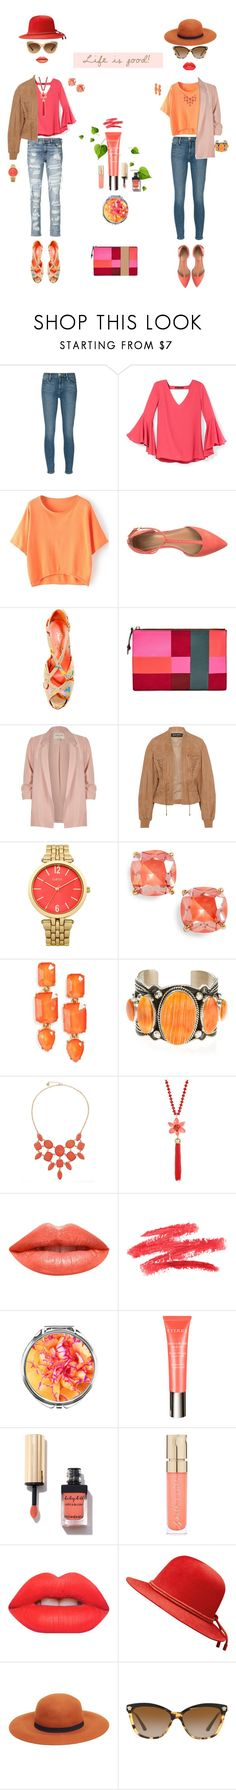 """""""life.is.good"""" by k-hearts-a ❤ liked on Polyvore featuring rag & bone, Frame, White House Black Market, Calvin Klein, Privileged, FOSSIL, River Island, Balmain, Kate Spade and Loren Hope"""